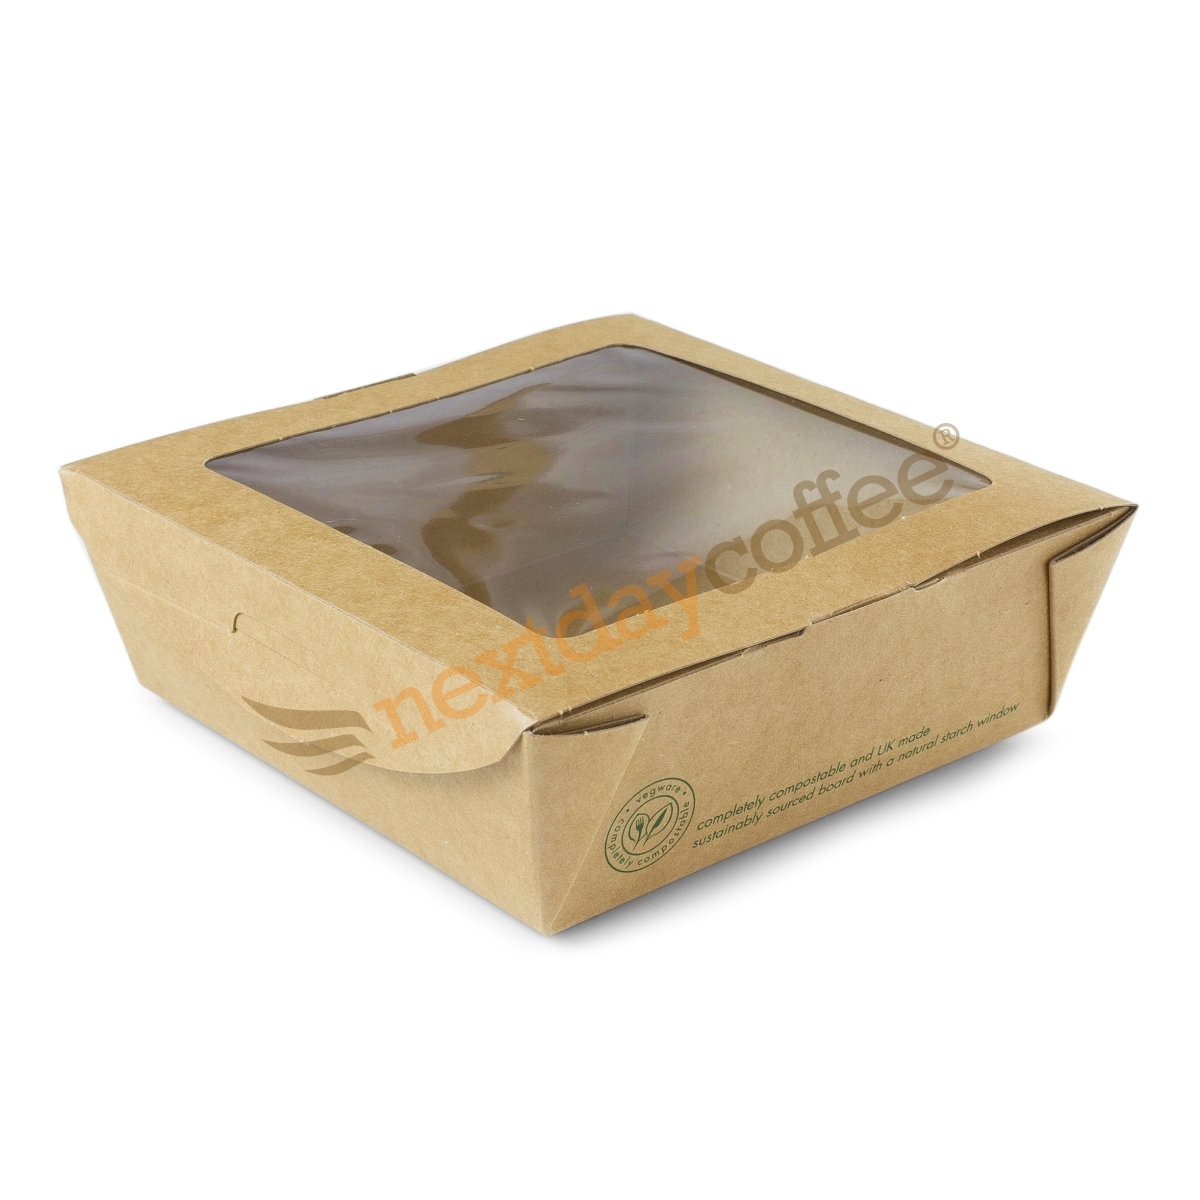 Vegware Compostable Salad Window Box (300)